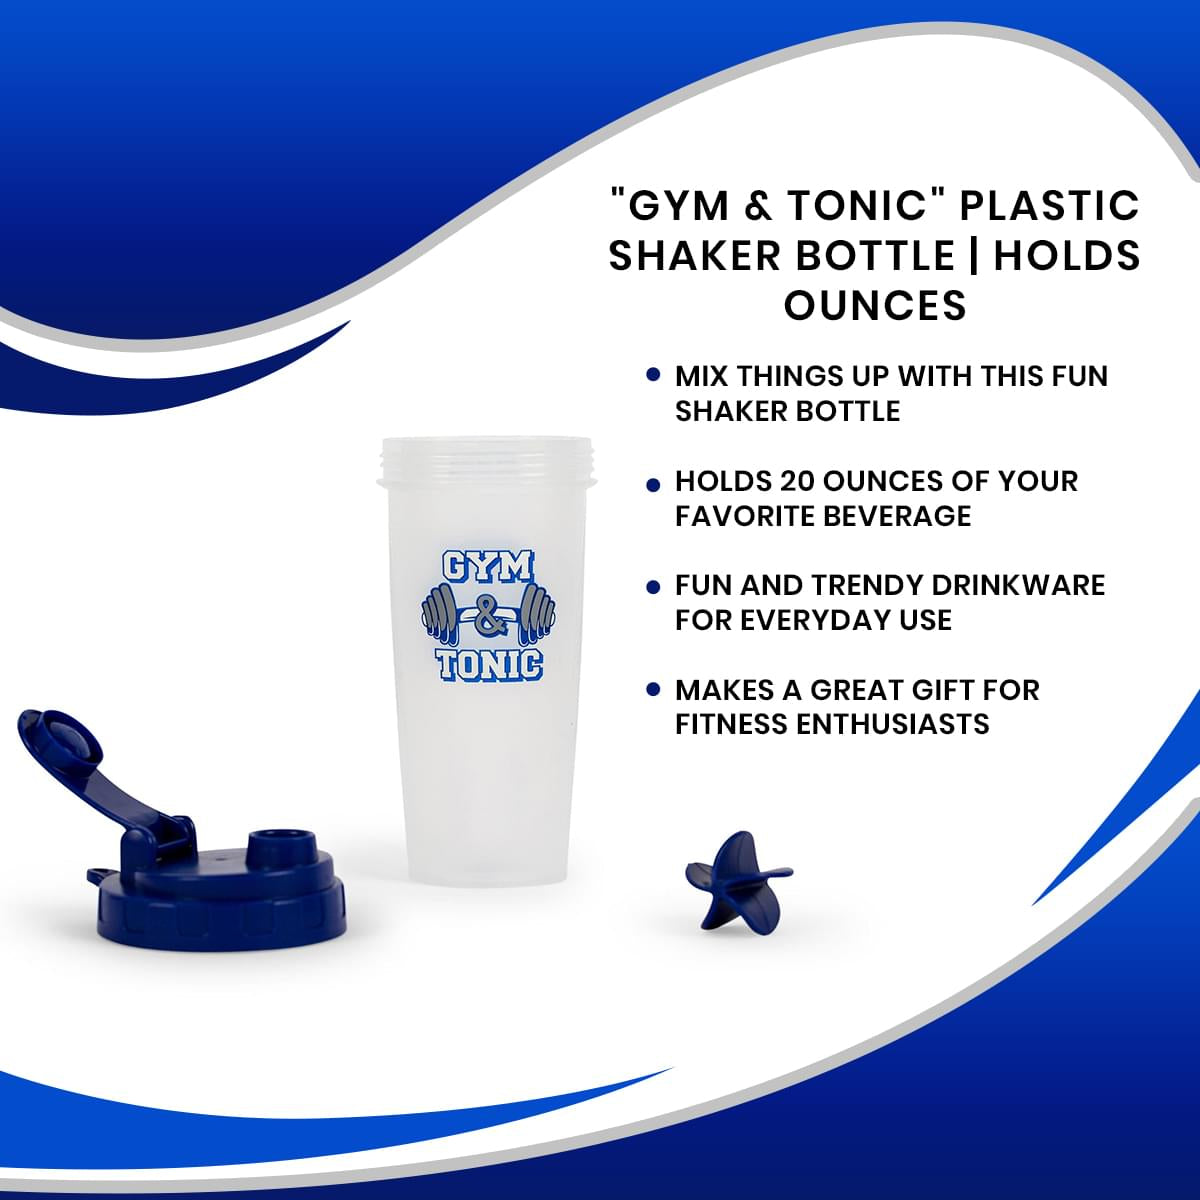 """Gym & Tonic"" Plastic Shaker Bottle 